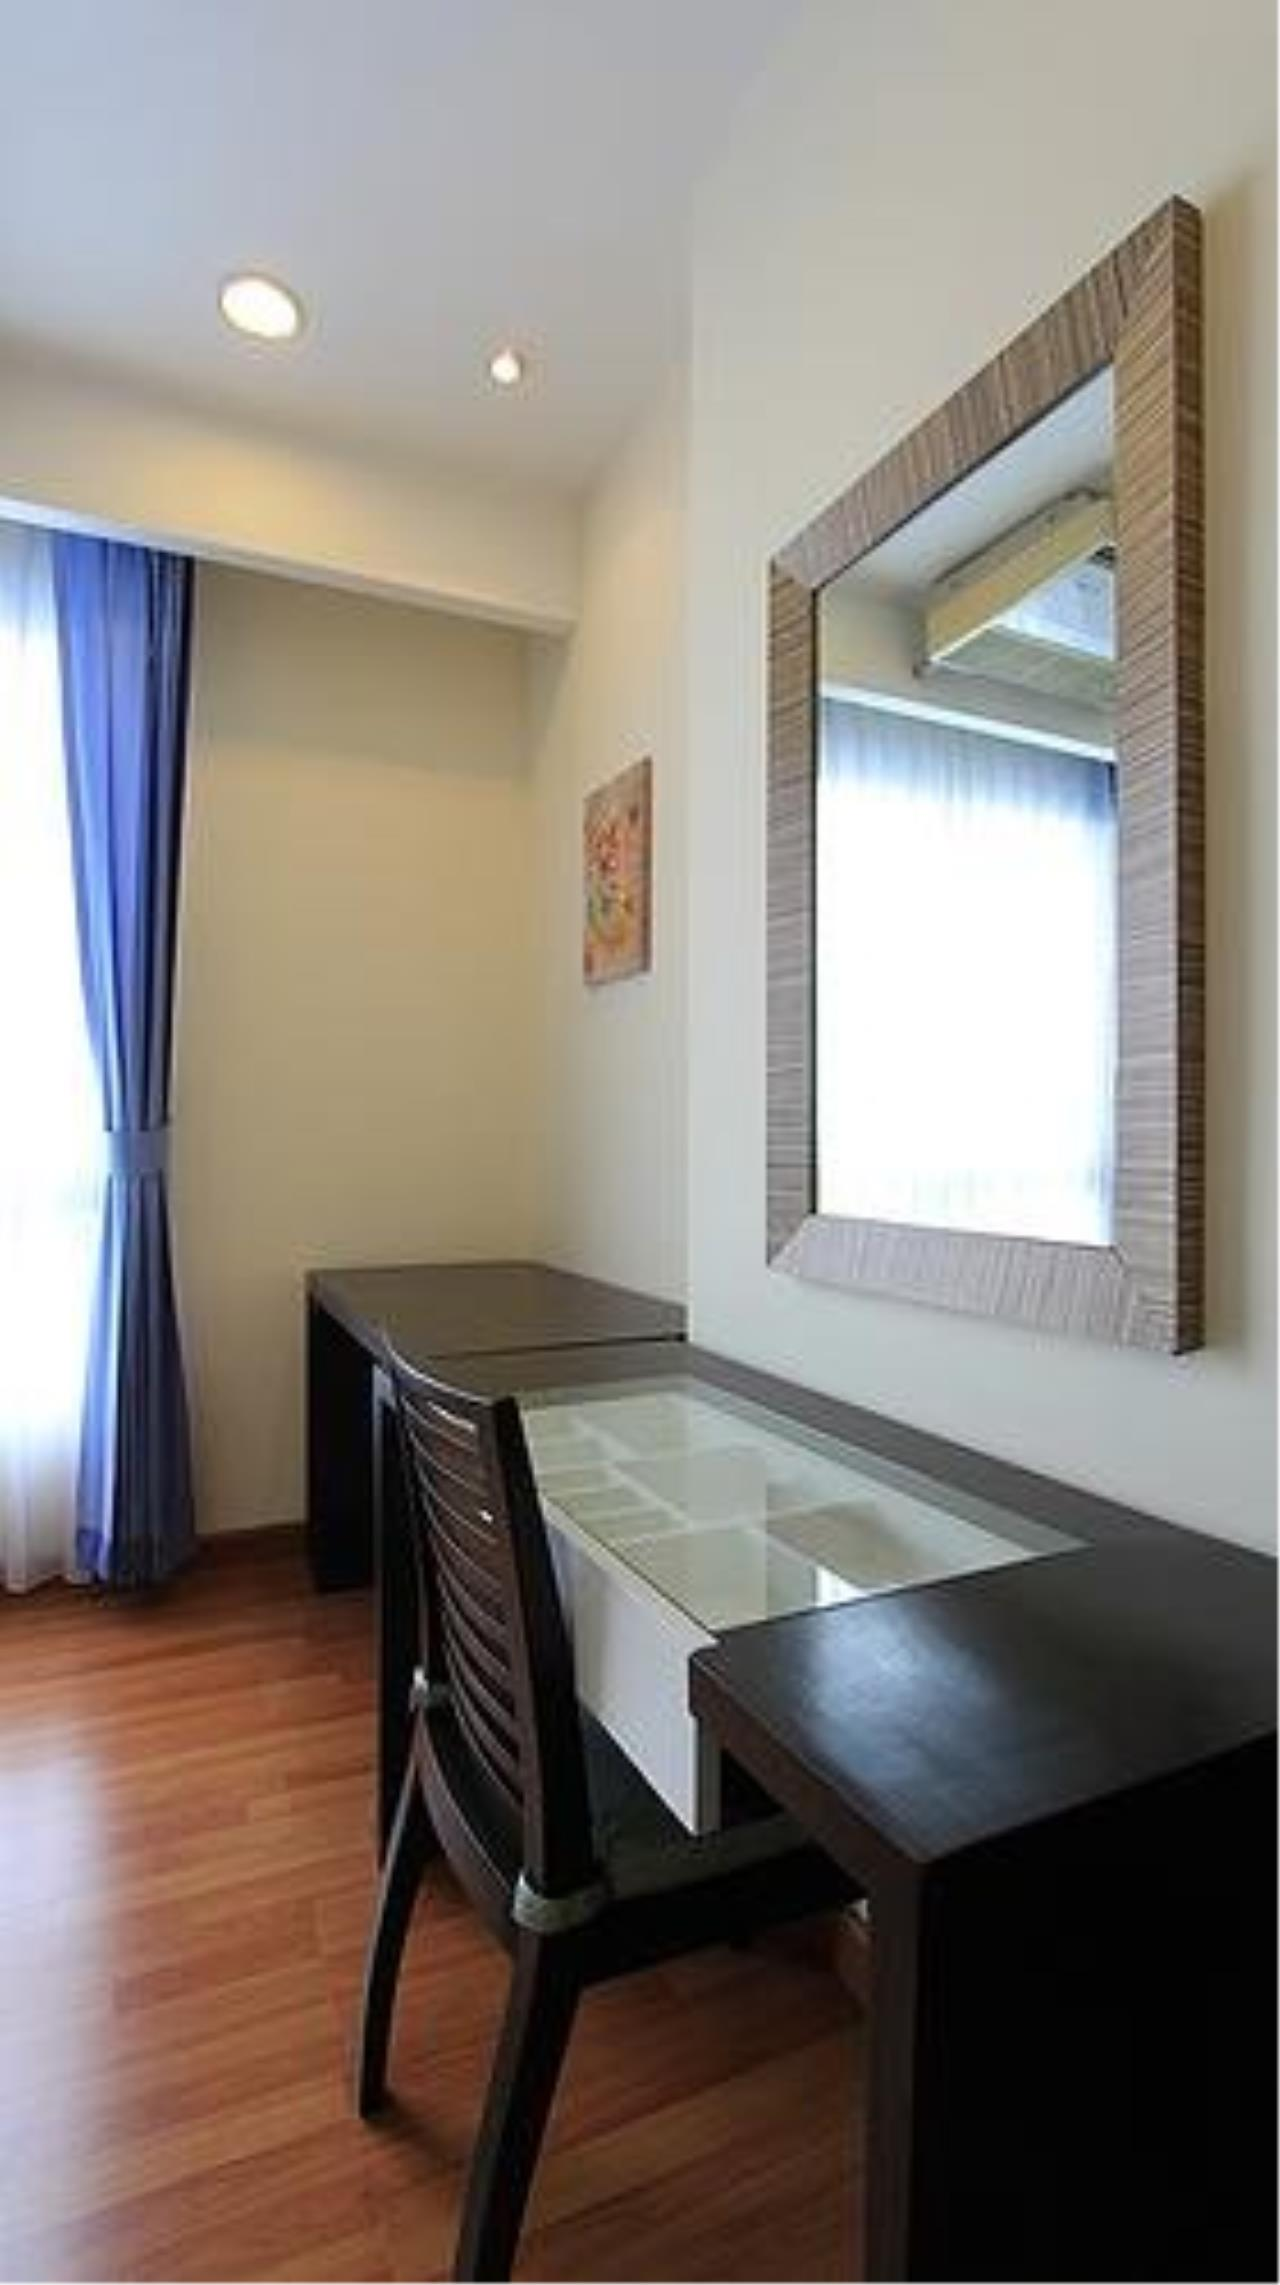 Piri Property Agency's Spacious 1 Bedroom in the Sarin Suites Building for rent 4